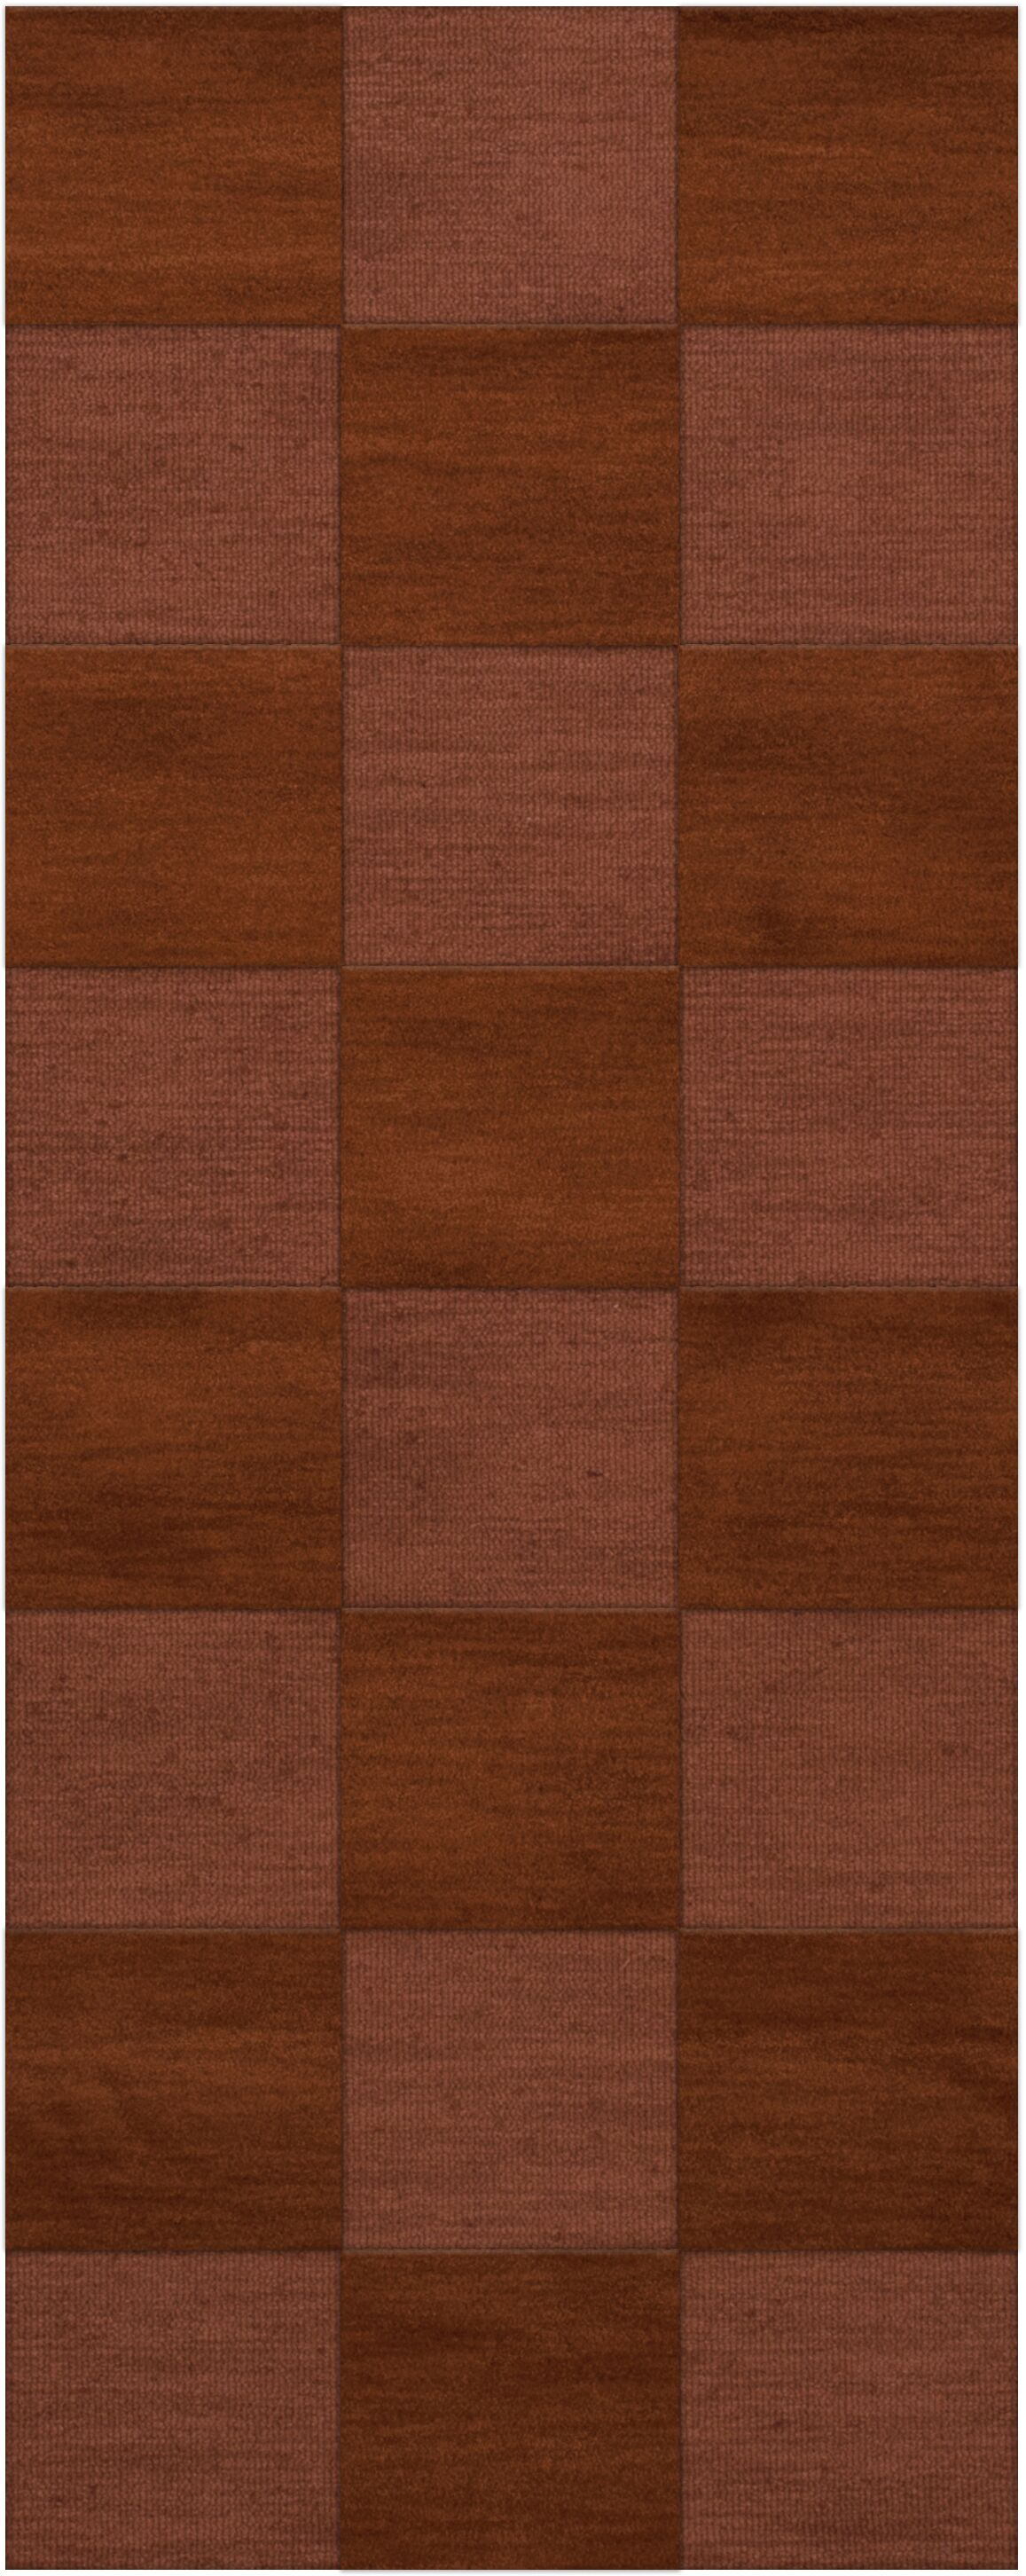 Dover Tufted Wool Spice Area Rug Rug Size: Runner 2'6